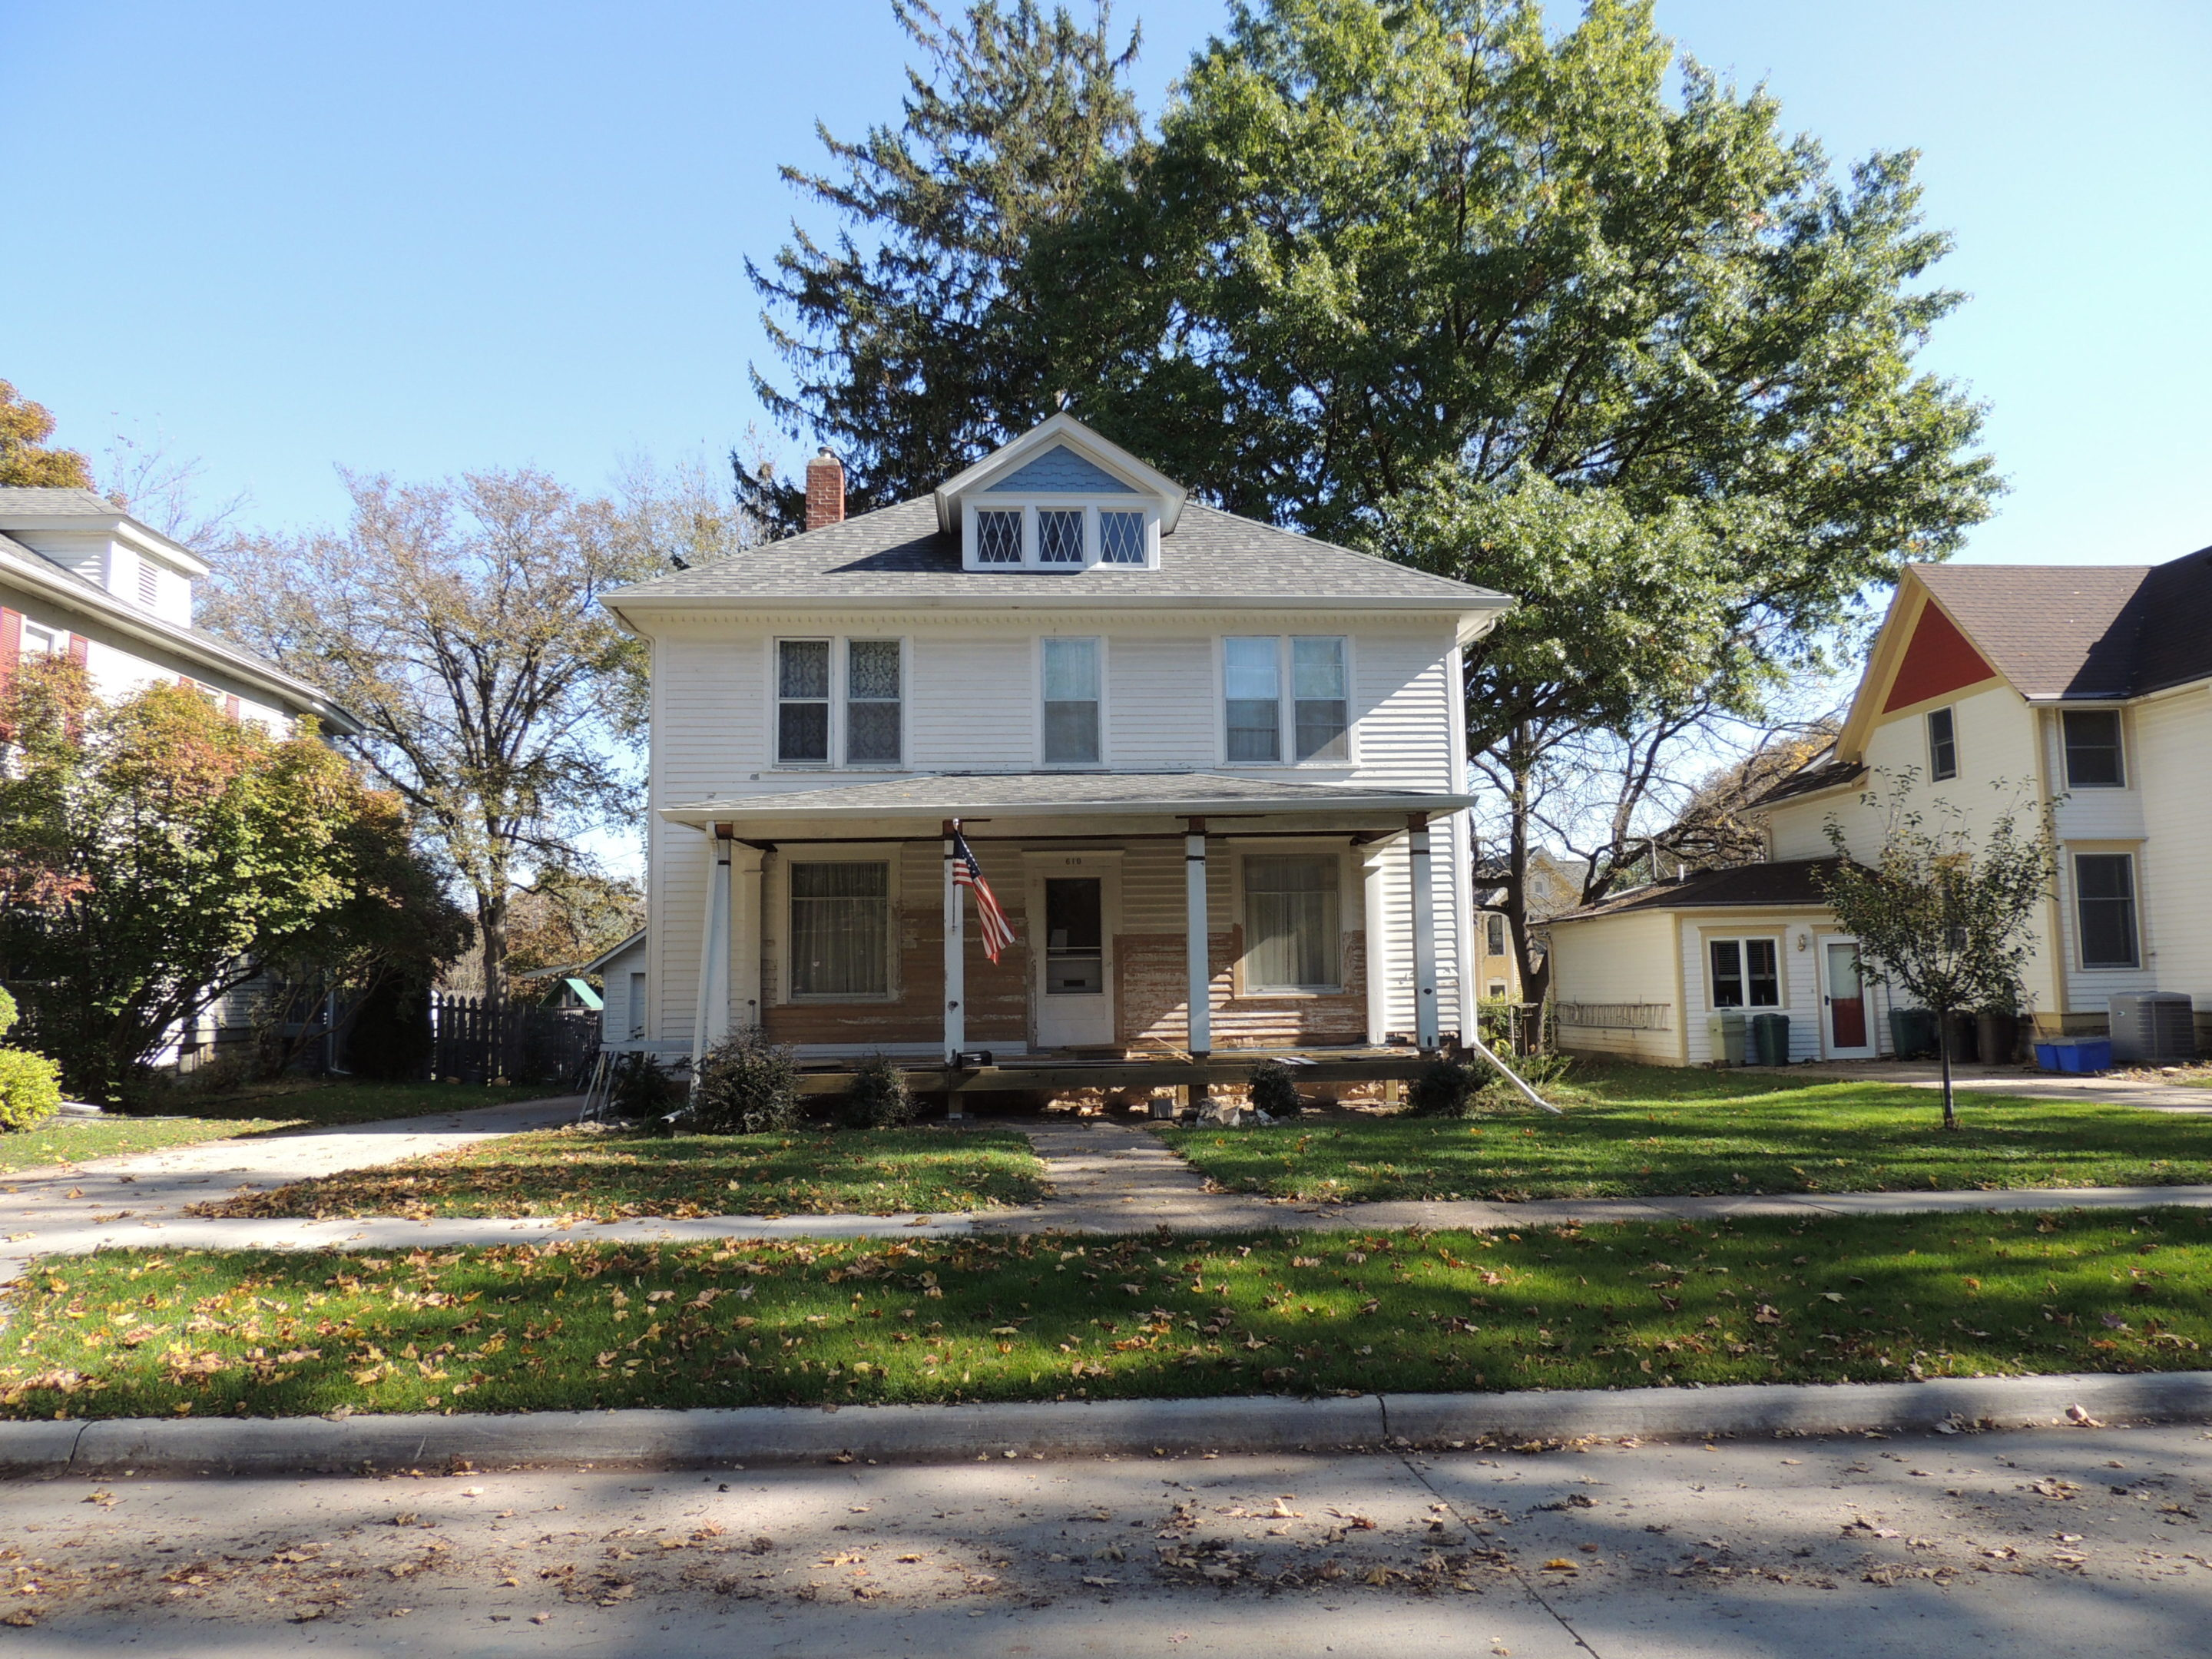 Photo of house at 610 5th Avenue NW